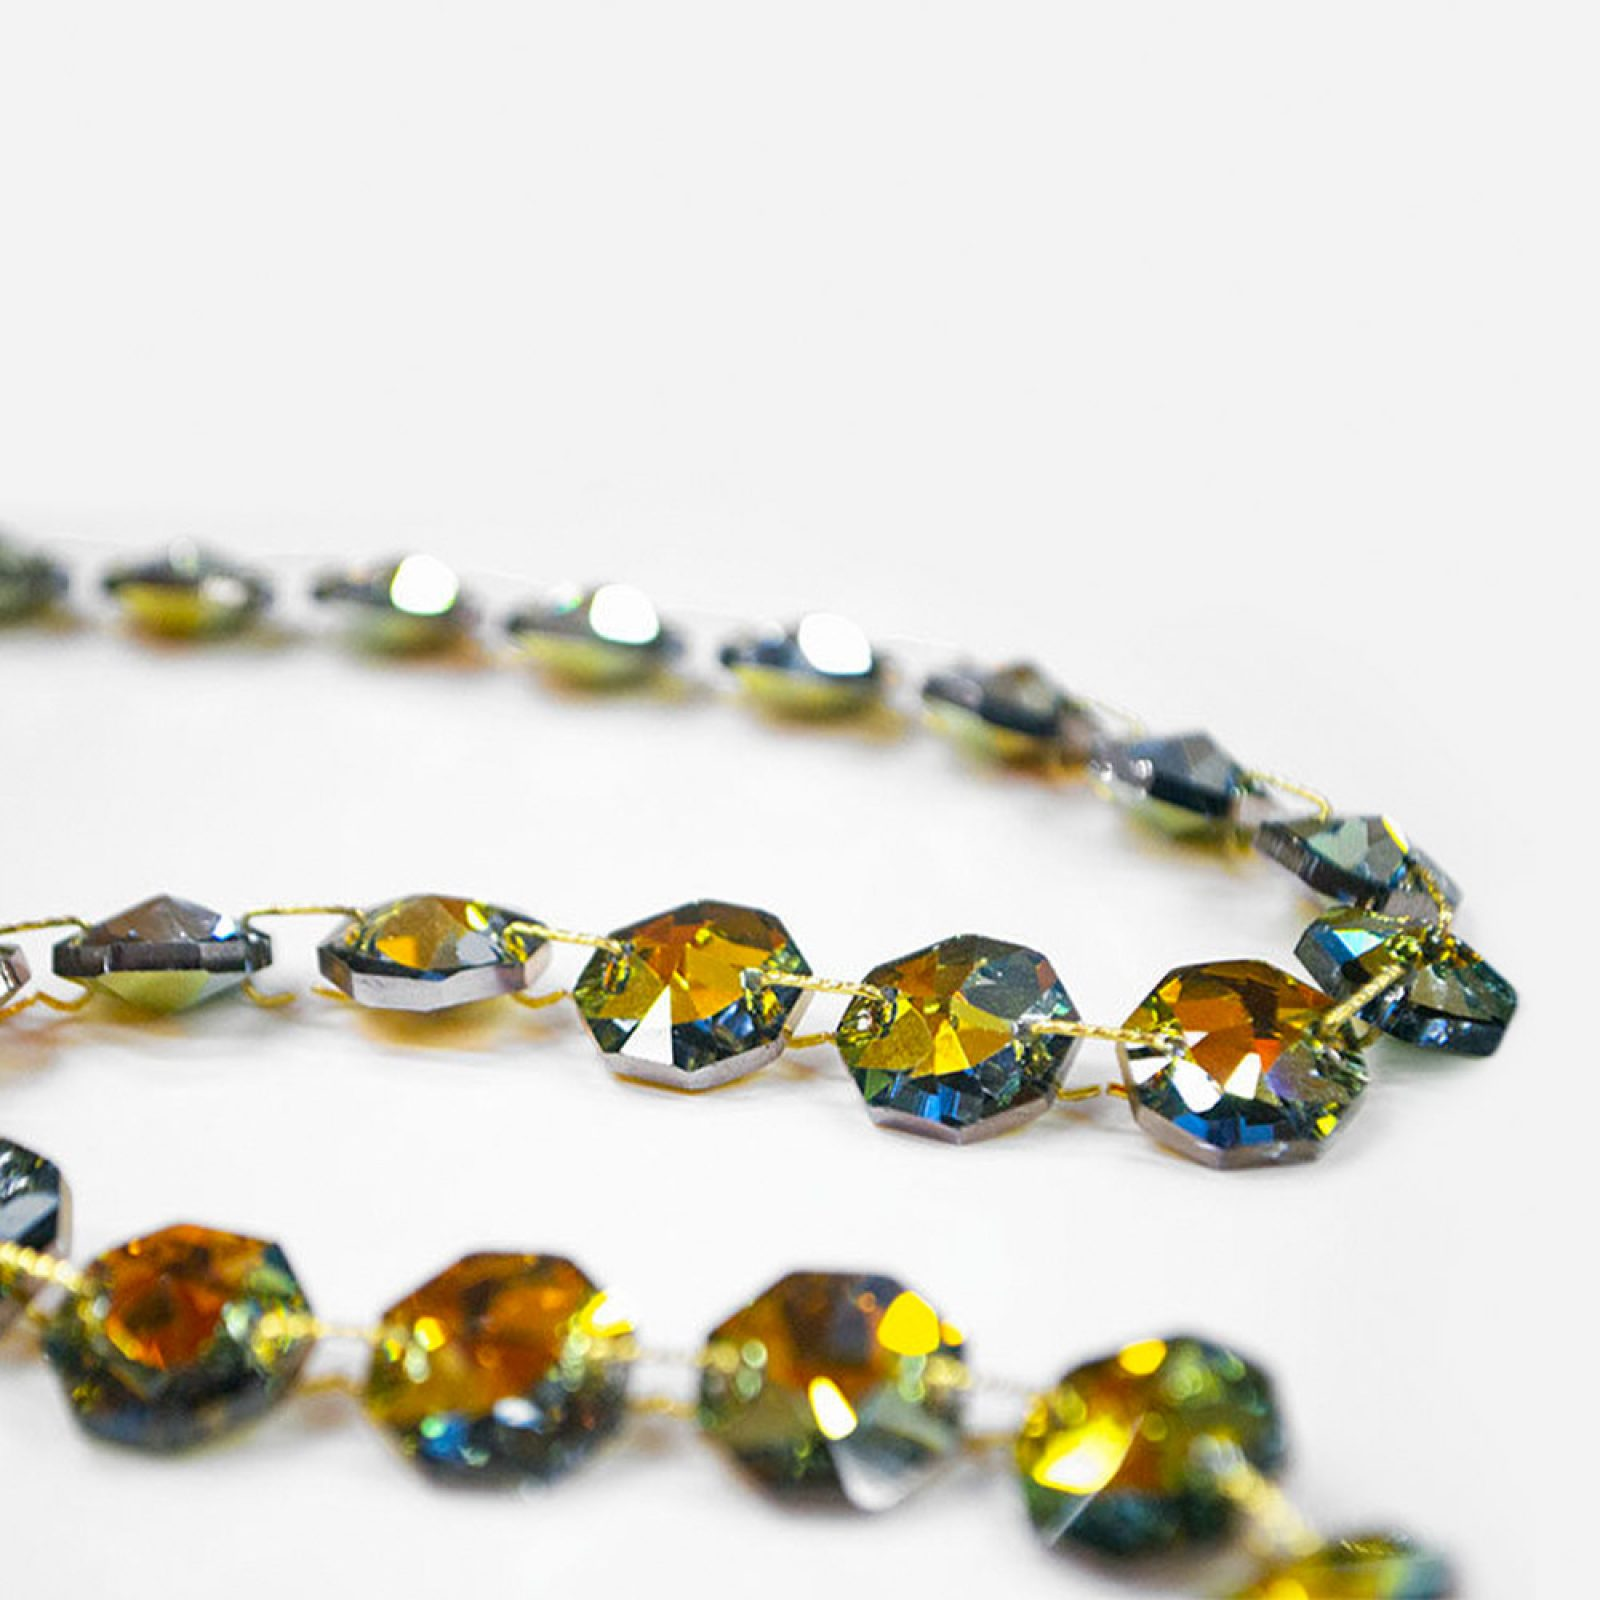 Kasida Oase - Crystals from famous jewellers | Natalis Luxus